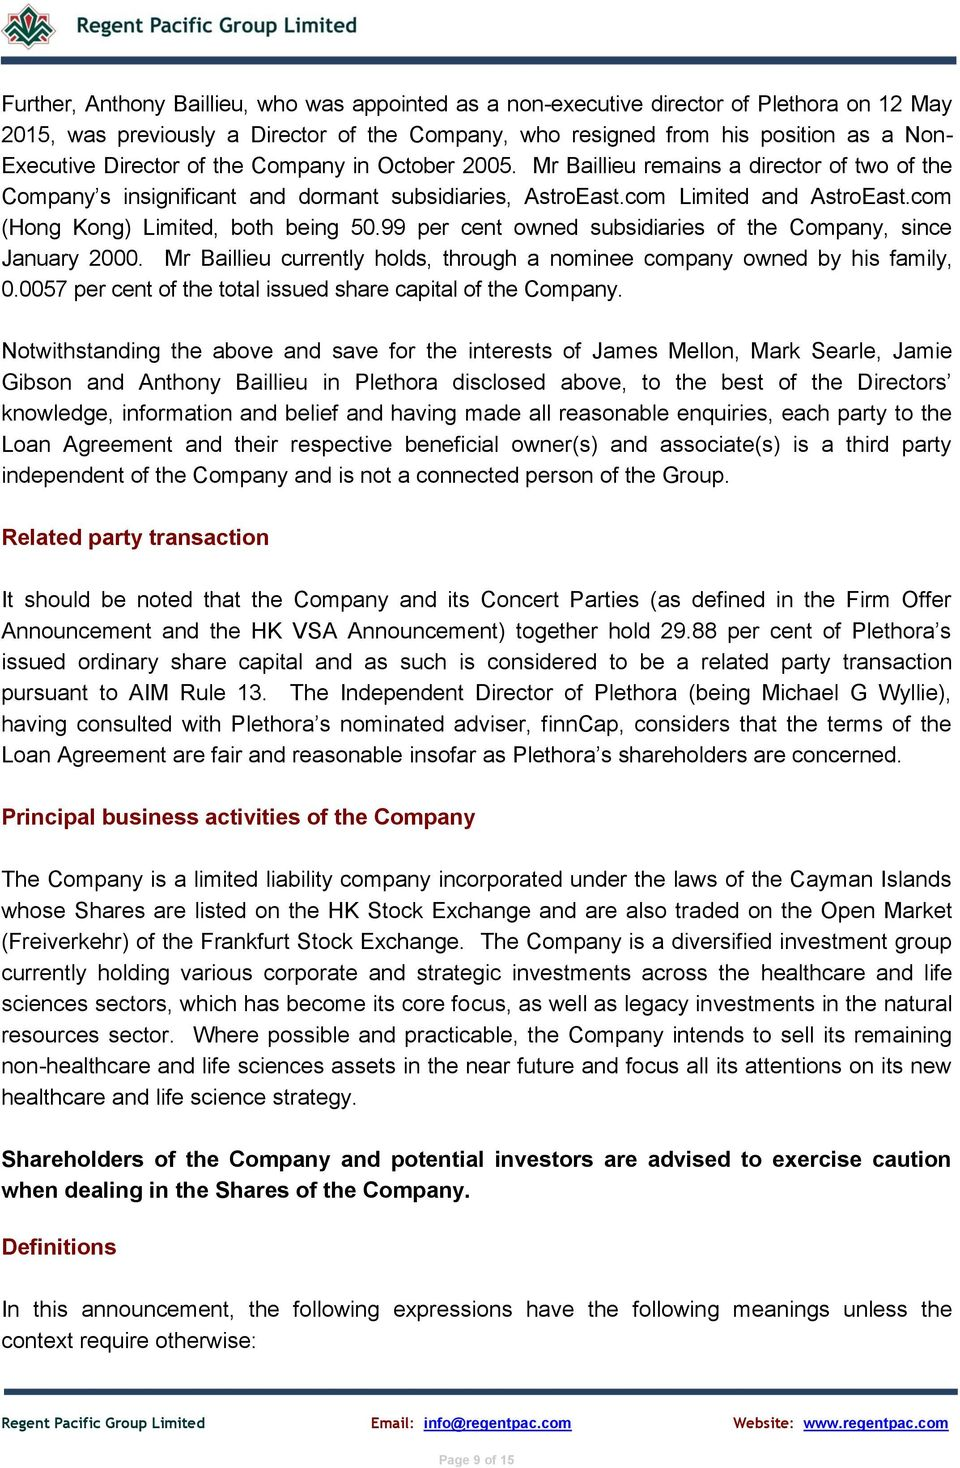 com (Hong Kong) Limited, both being 50.99 per cent owned subsidiaries of the Company, since January 2000. Mr Baillieu currently holds, through a nominee company owned by his family, 0.